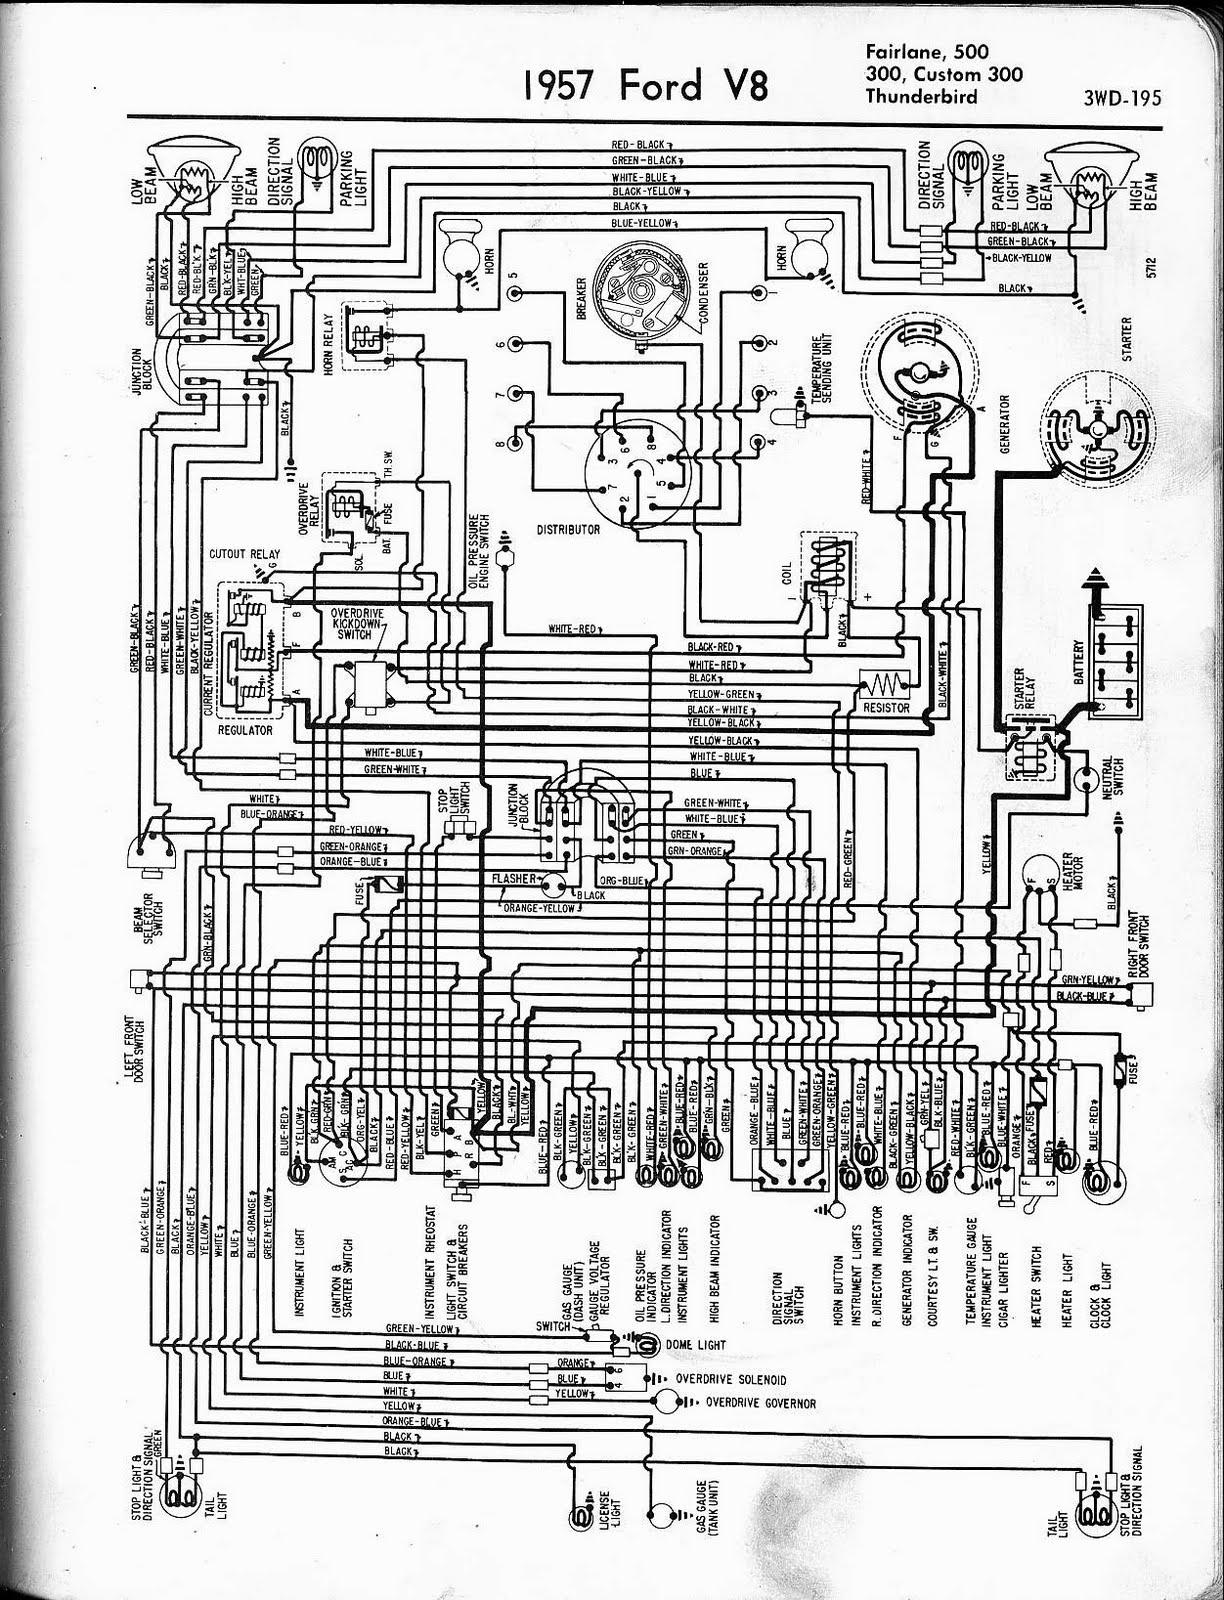 medium resolution of free auto wiring diagram 1957 ford v8 fairlane custom300 2006 ford crown victoria fuse box diagram